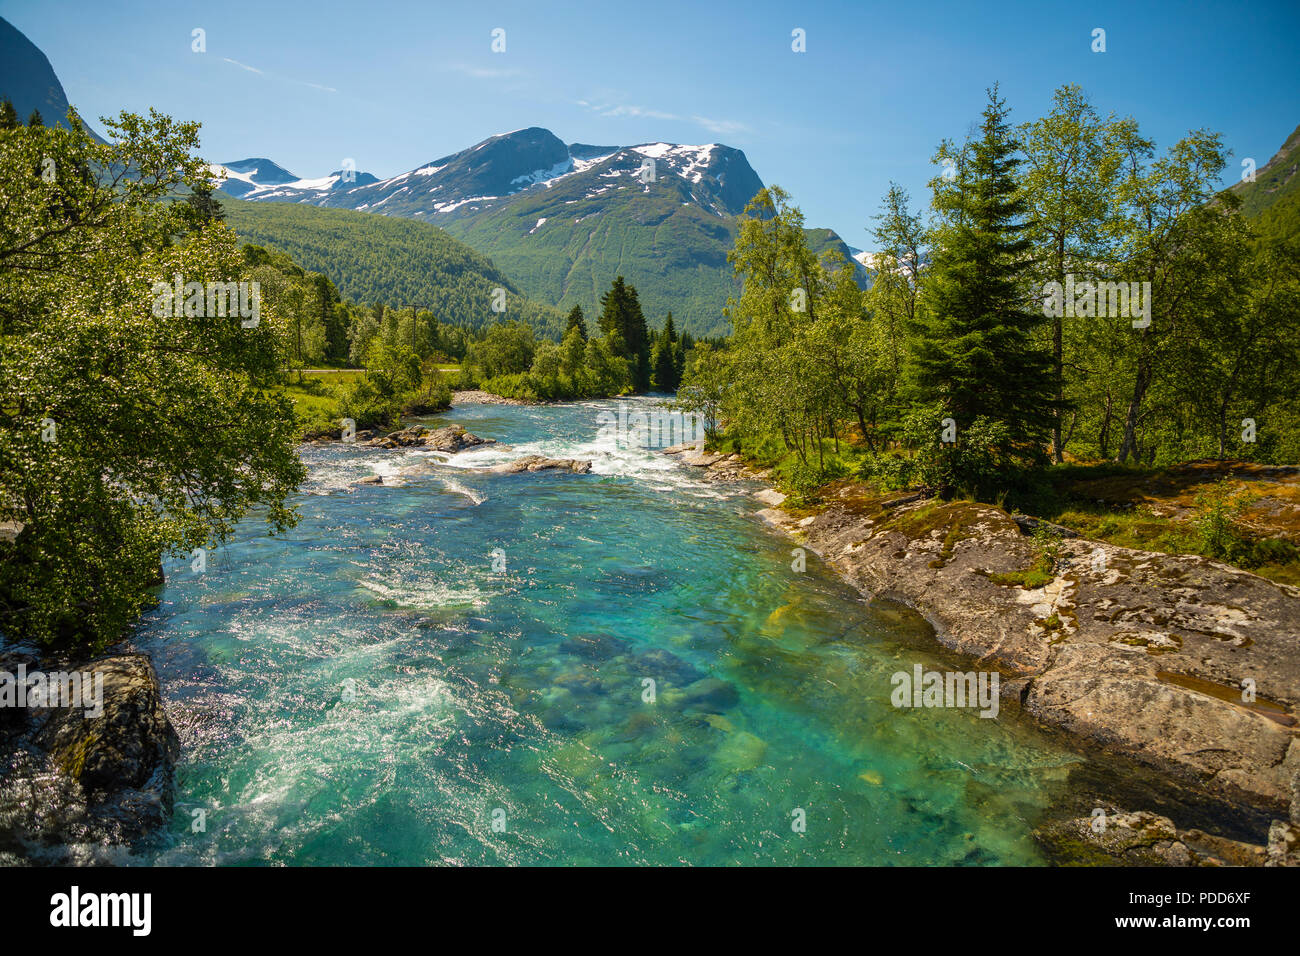 Beautiful mountain river near Trollstigen, Norway - Stock Image